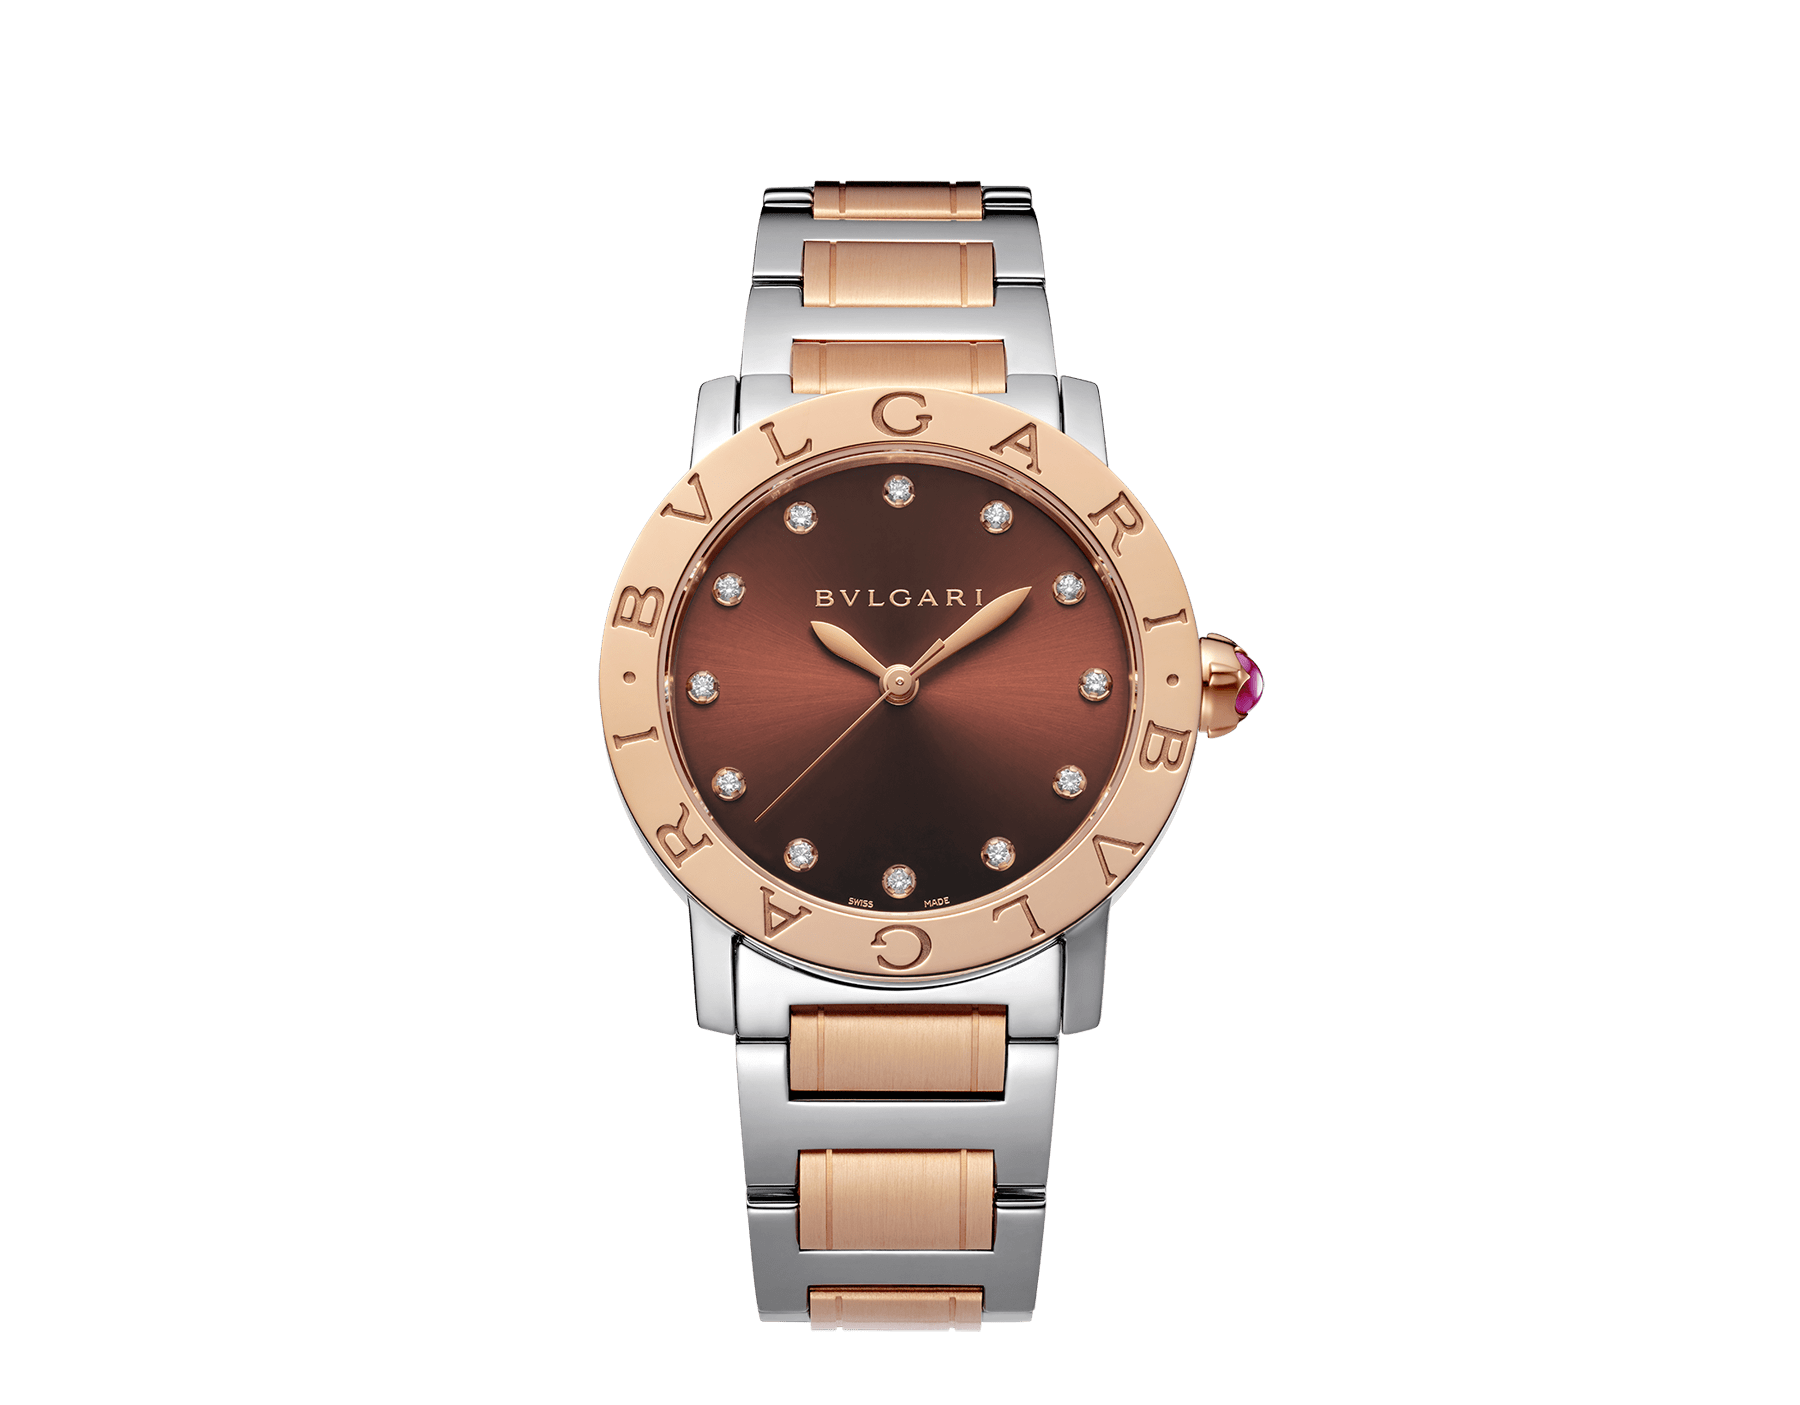 BVLGARI BVLGARI watch in stainless steel and 18 kt rose gold case and bracelet, with brown soleil lacquered dial and diamond indexes. Medium model 102157 image 1